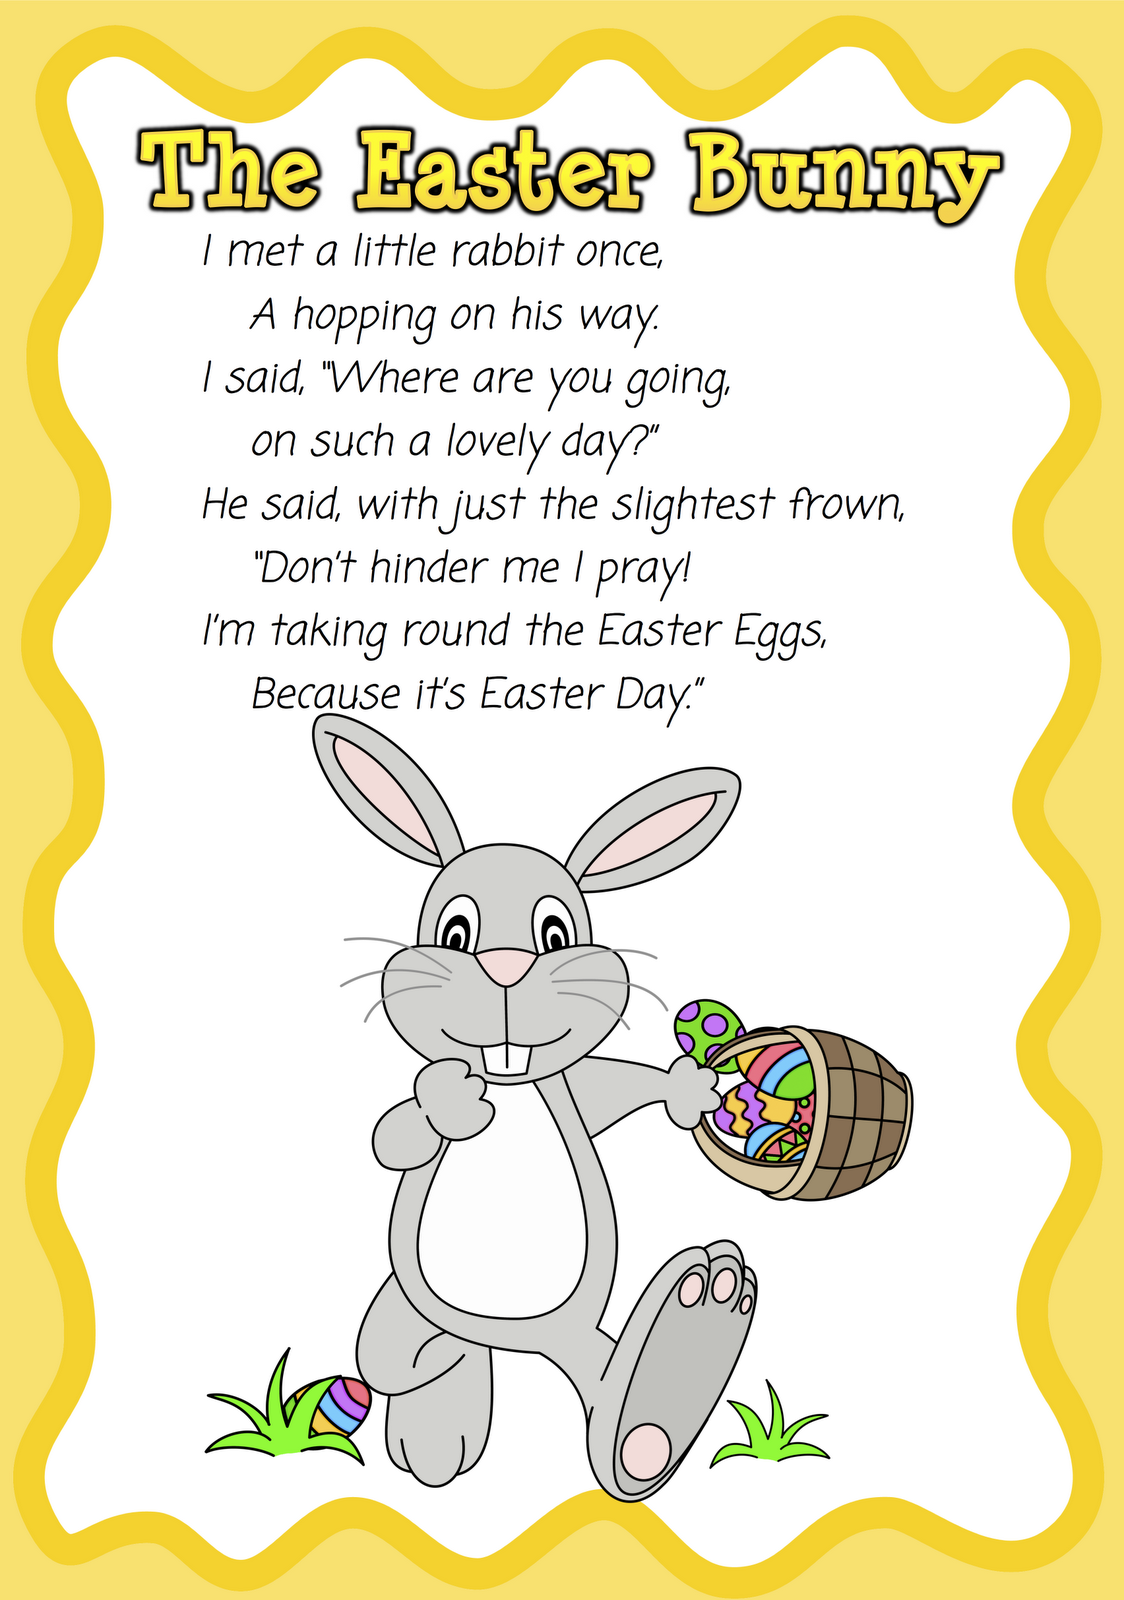 Easter Bunny Poems and Poetry Pictures Images Wallpapers